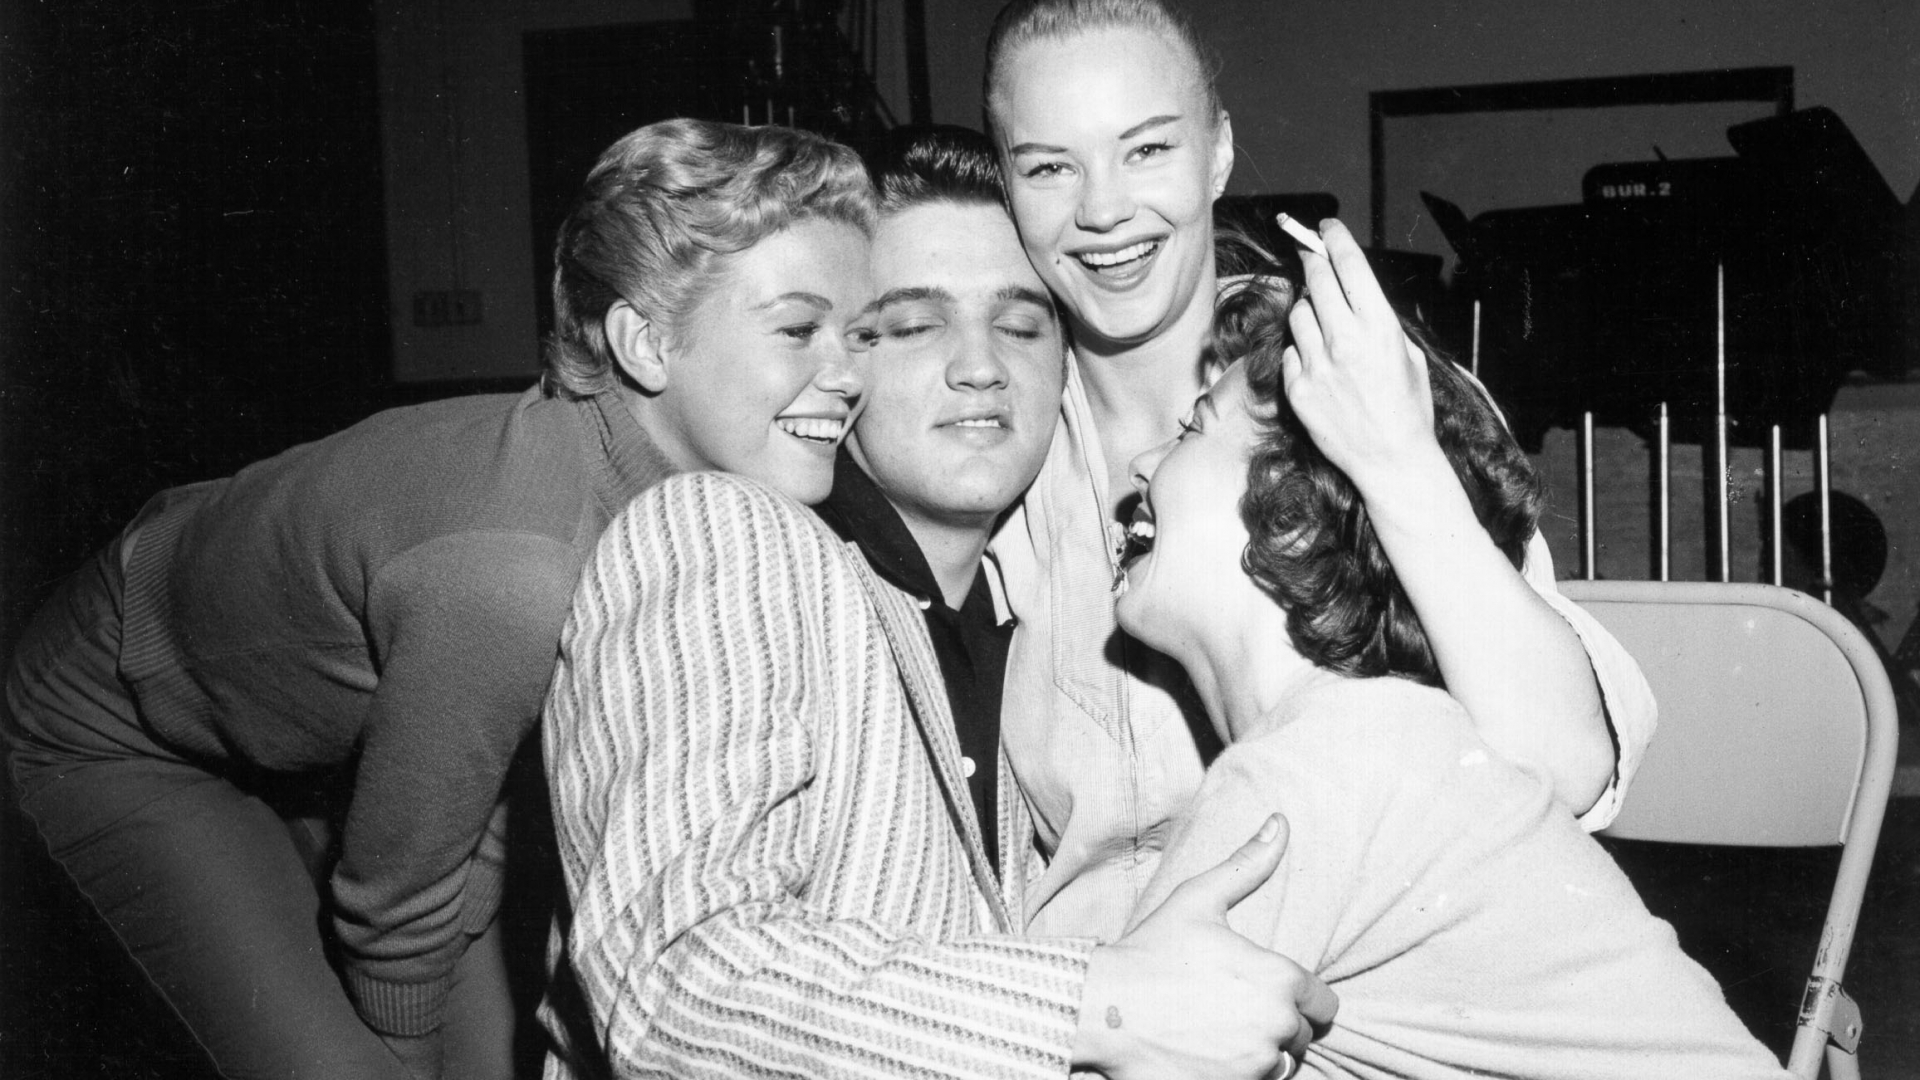 Rock and roll musician Elvis Presley gets mobbed by girls backstage of the Milton Berle Show in Burbank, California, 1956. (Credit: Michael Ochs Archives/Getty Images)